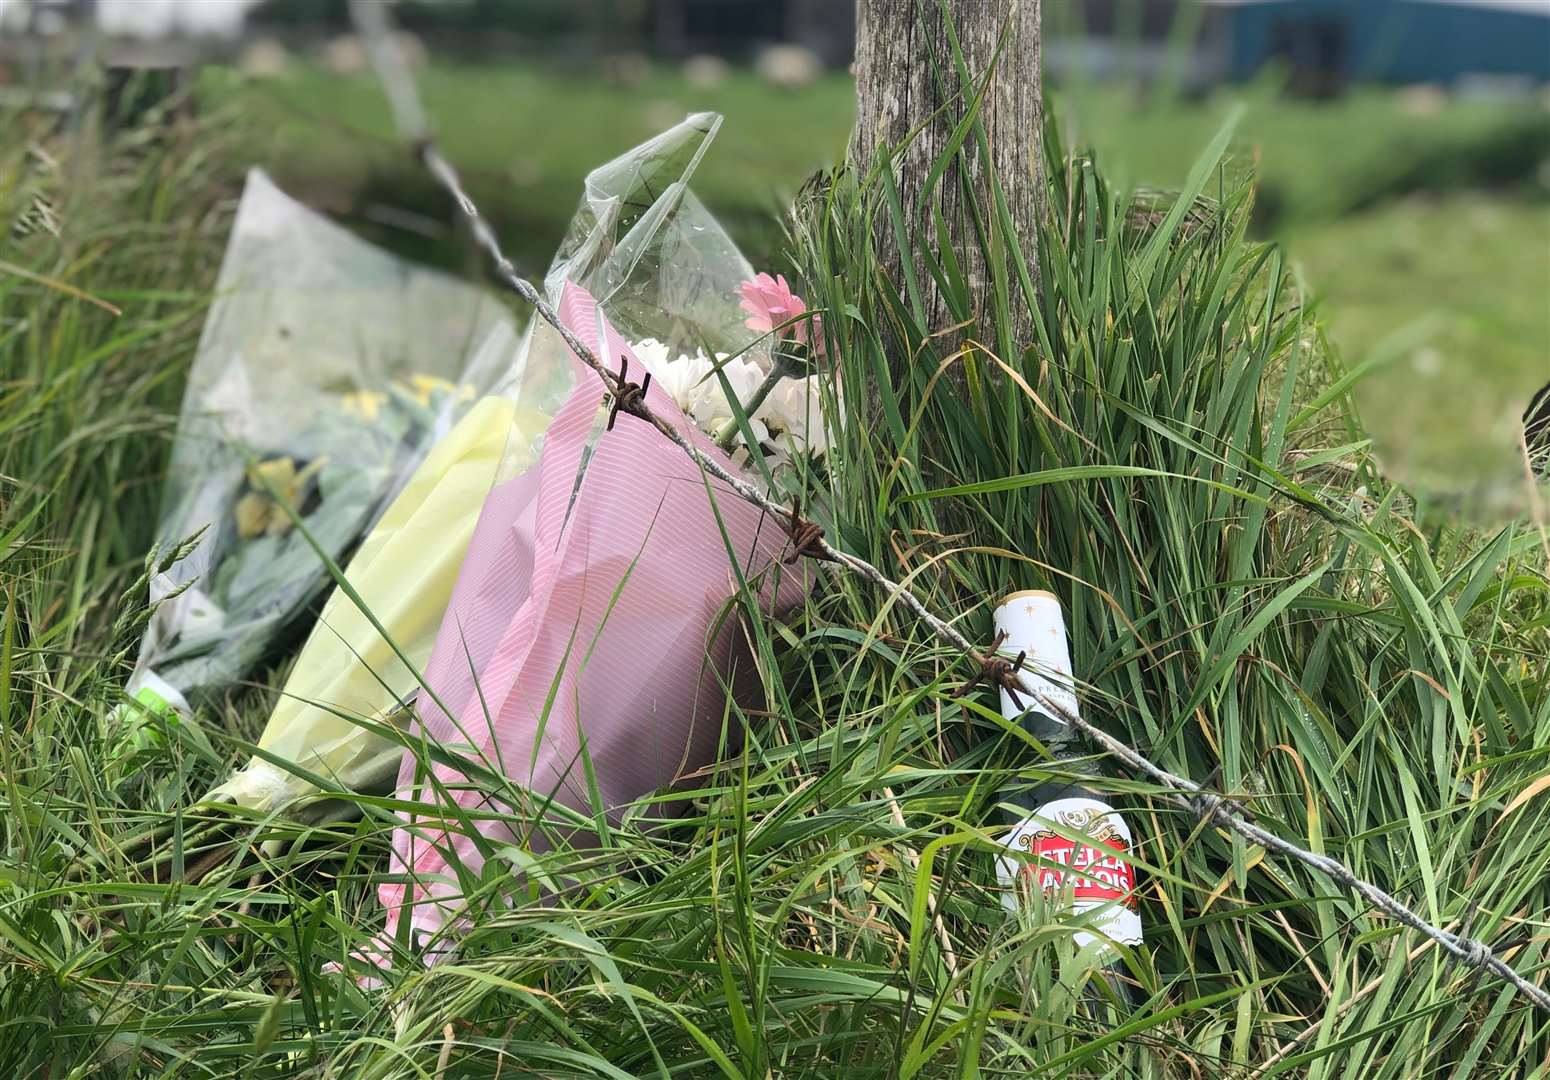 Beer and floral tributes left at double-fatal crash scene